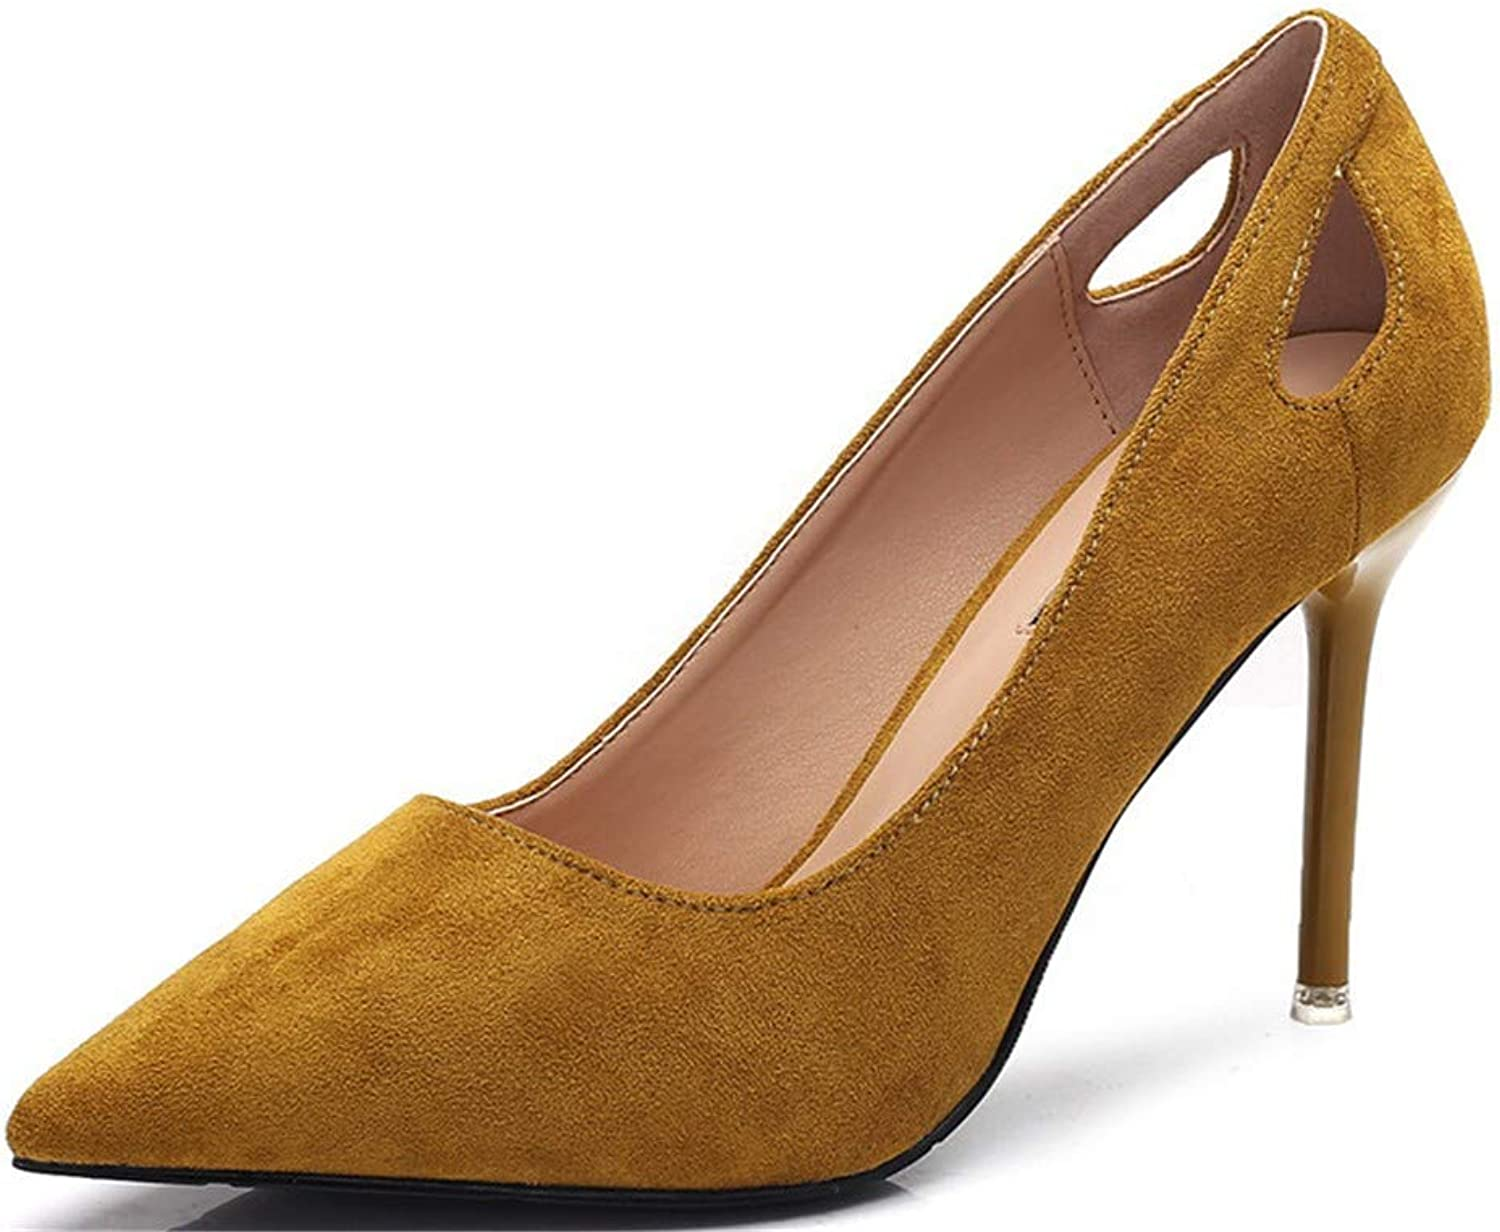 Women's Yellow Extreme High Fashion Peep Toe Pumps Handmade for Wedding Party Dress Stiletto Slip On shoes